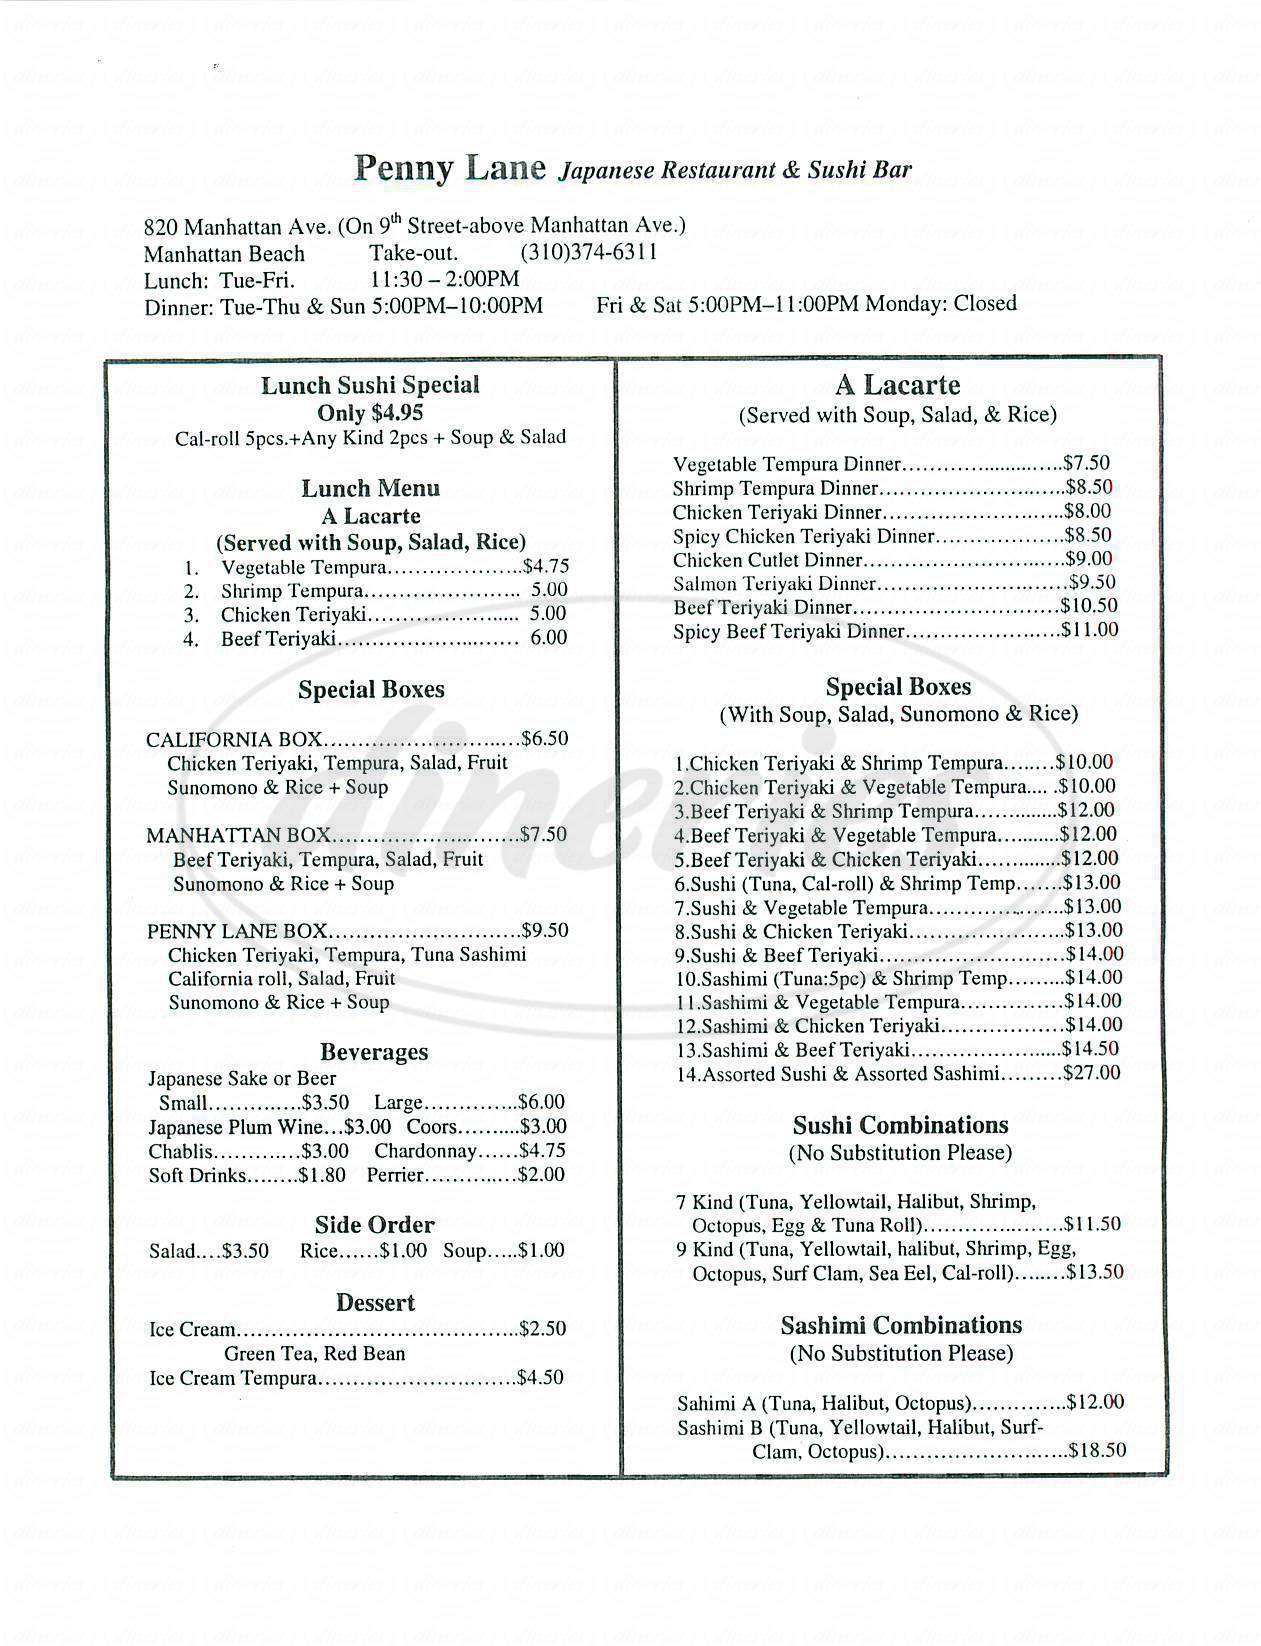 menu for Penny Lane